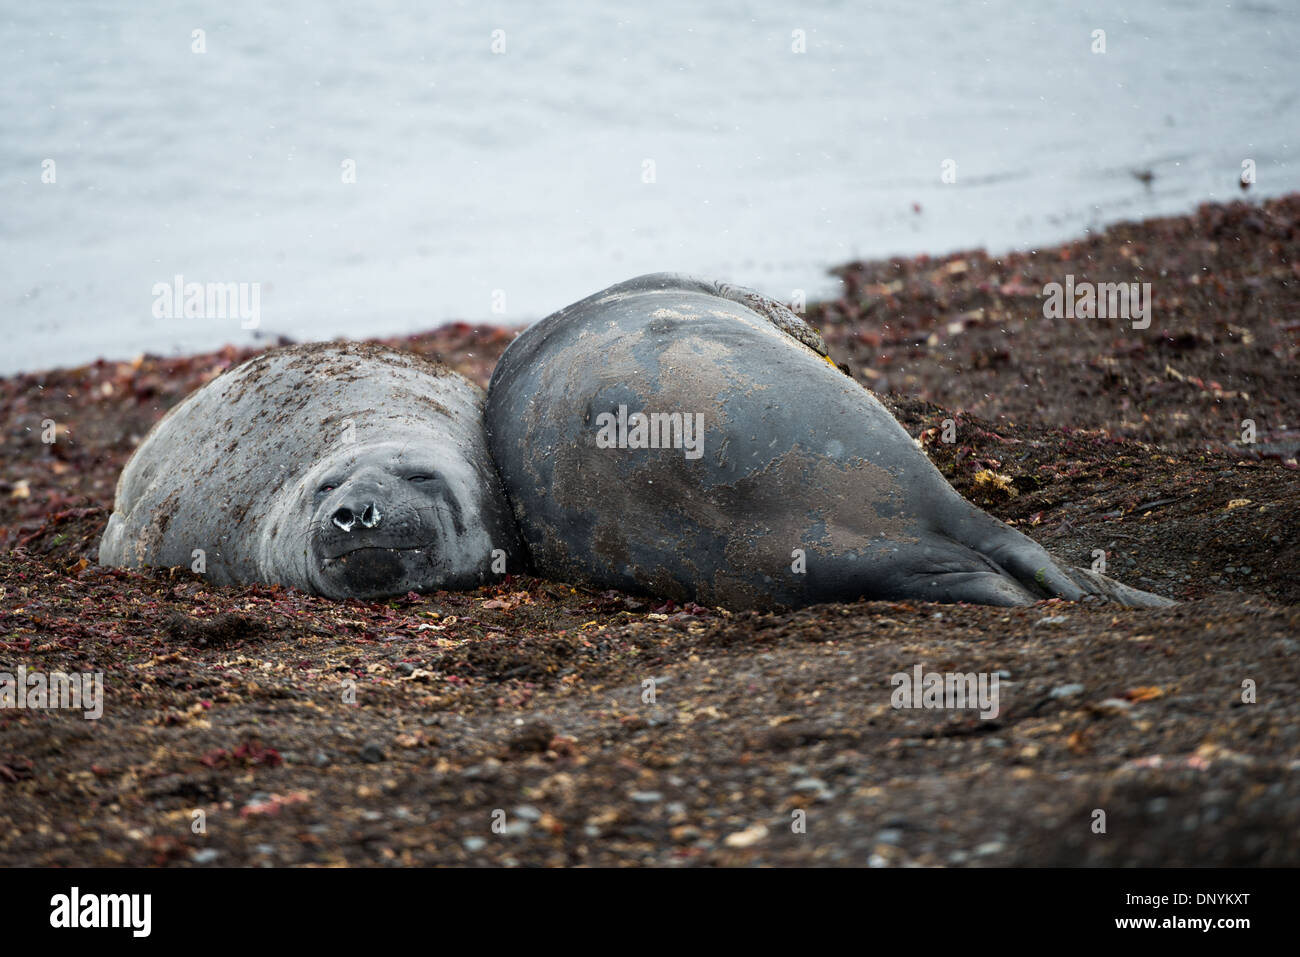 ANTARCTICA - A pair of Southern Elephant Seals lies on the beach of Livingston Island in the South Shetland Islands, Antarctica. - Stock Image